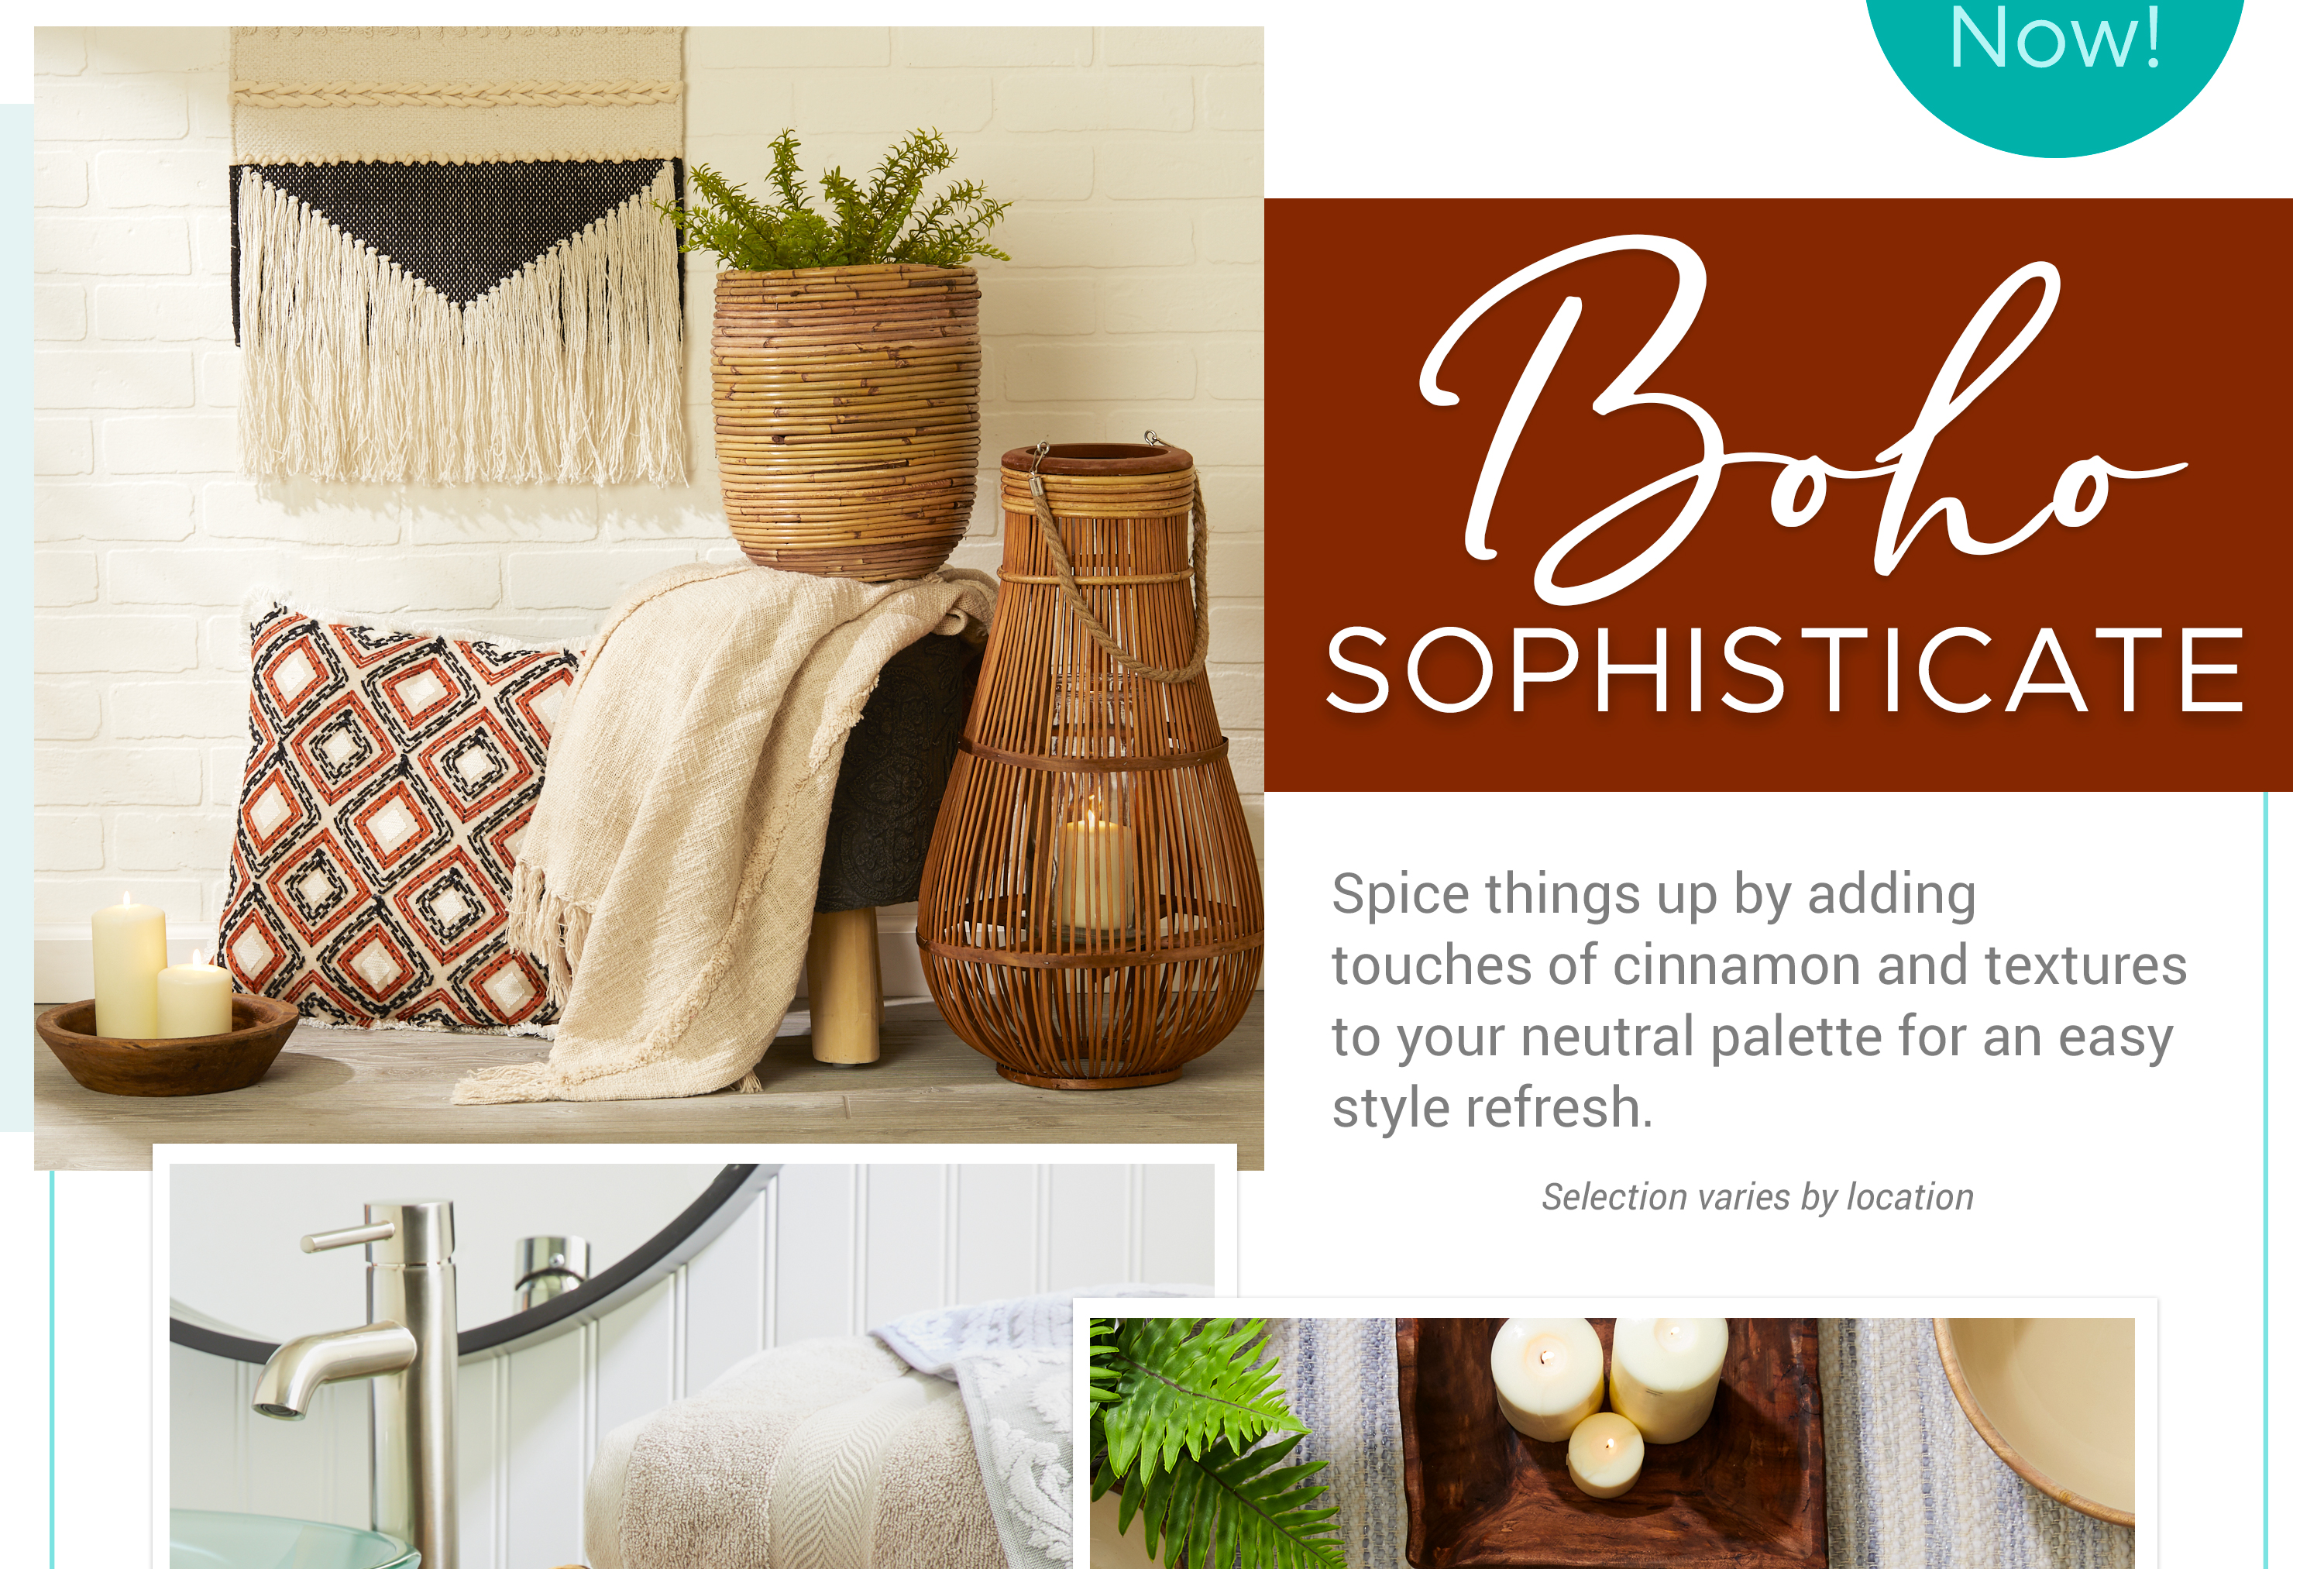 Boho Sophisticate - Spice things up by adding touches of cinnamon and textures to your neutral palette for an easy style refresh.